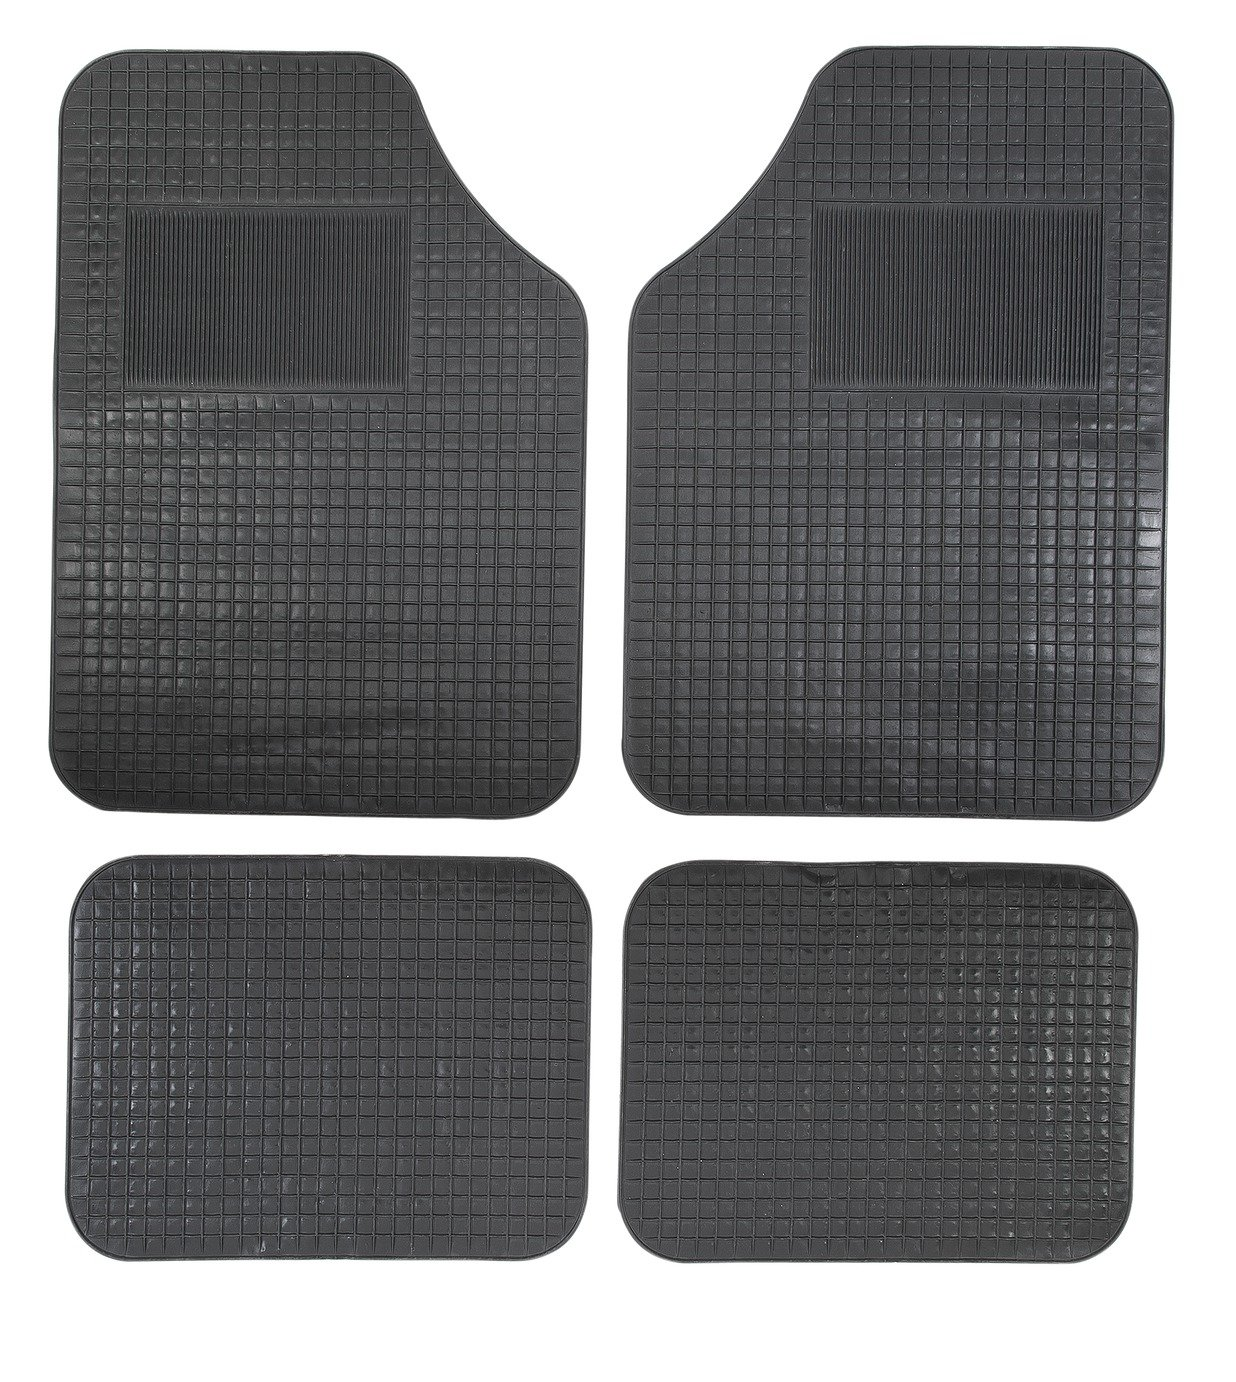 Image of Simple Value - Set of 4 Rubber Car Mats - Black